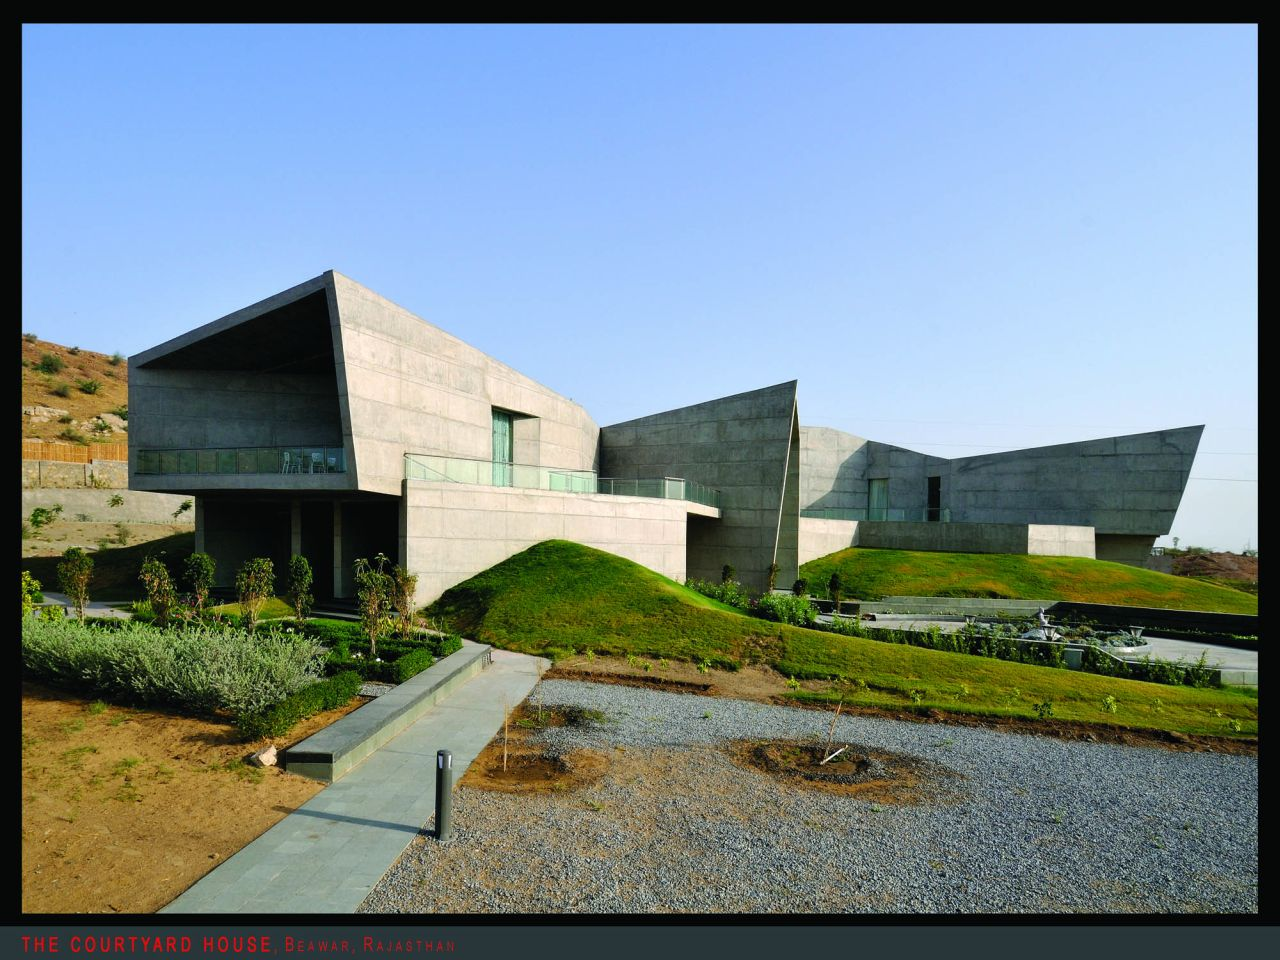 The Courtyard House  / Sanjay Puri Architects PVT Ltd, Courtesy of Sanjay Puri Architects PVT Ltd